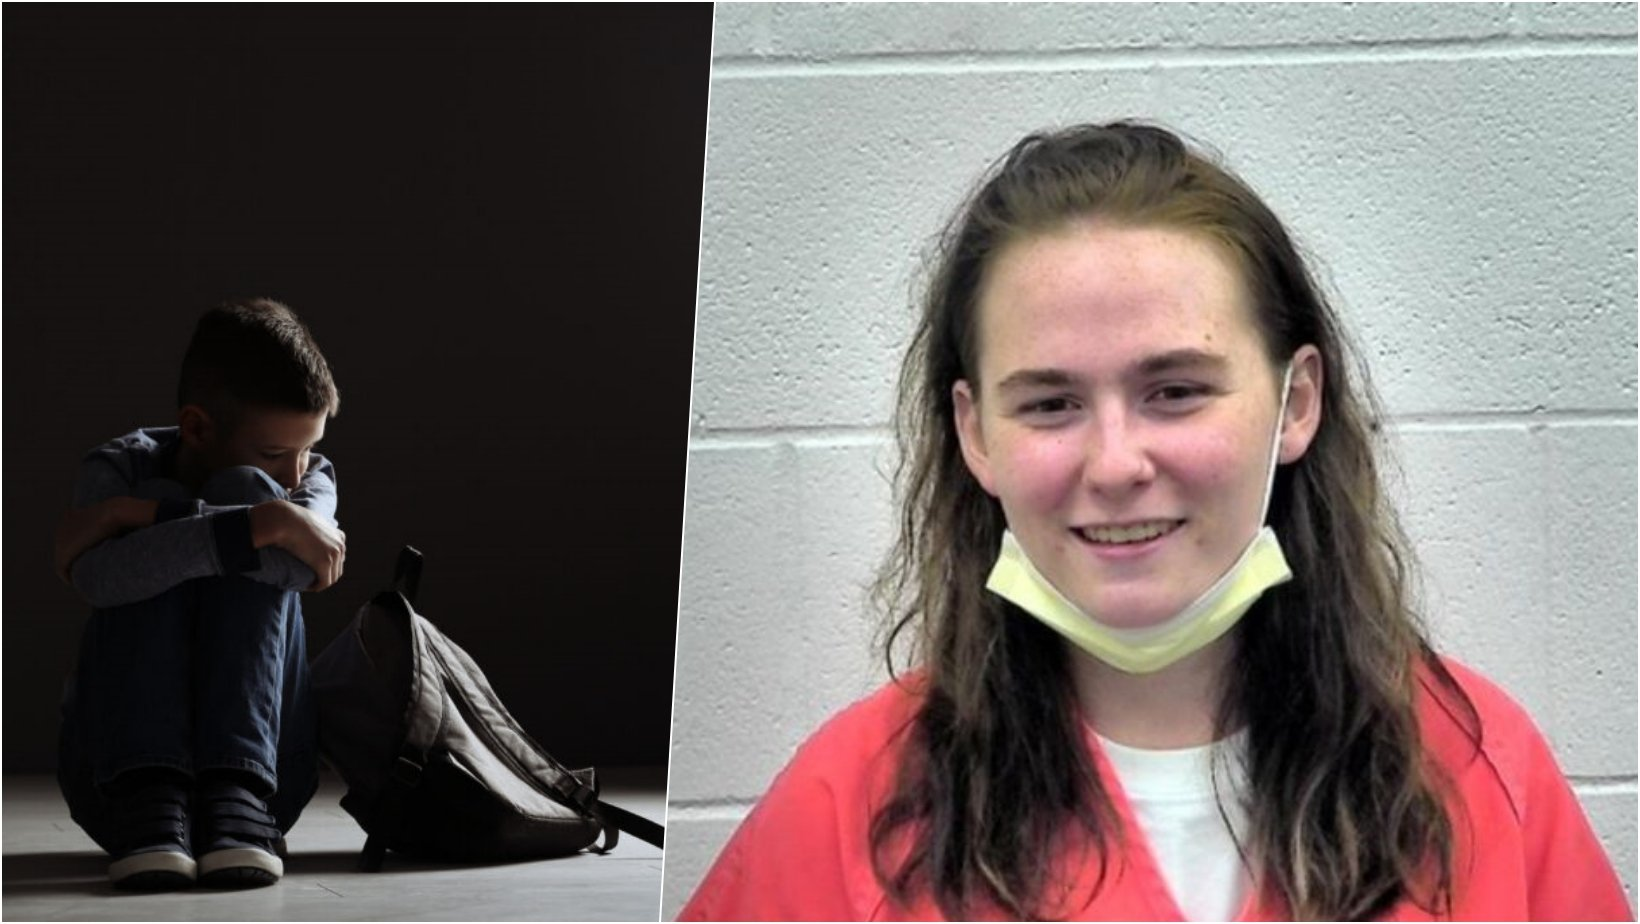 6 facebook cover 15.jpg?resize=412,275 - Woman Arrested For Abusing 12-Year-Old Boy Multiple Times And Bragged About It